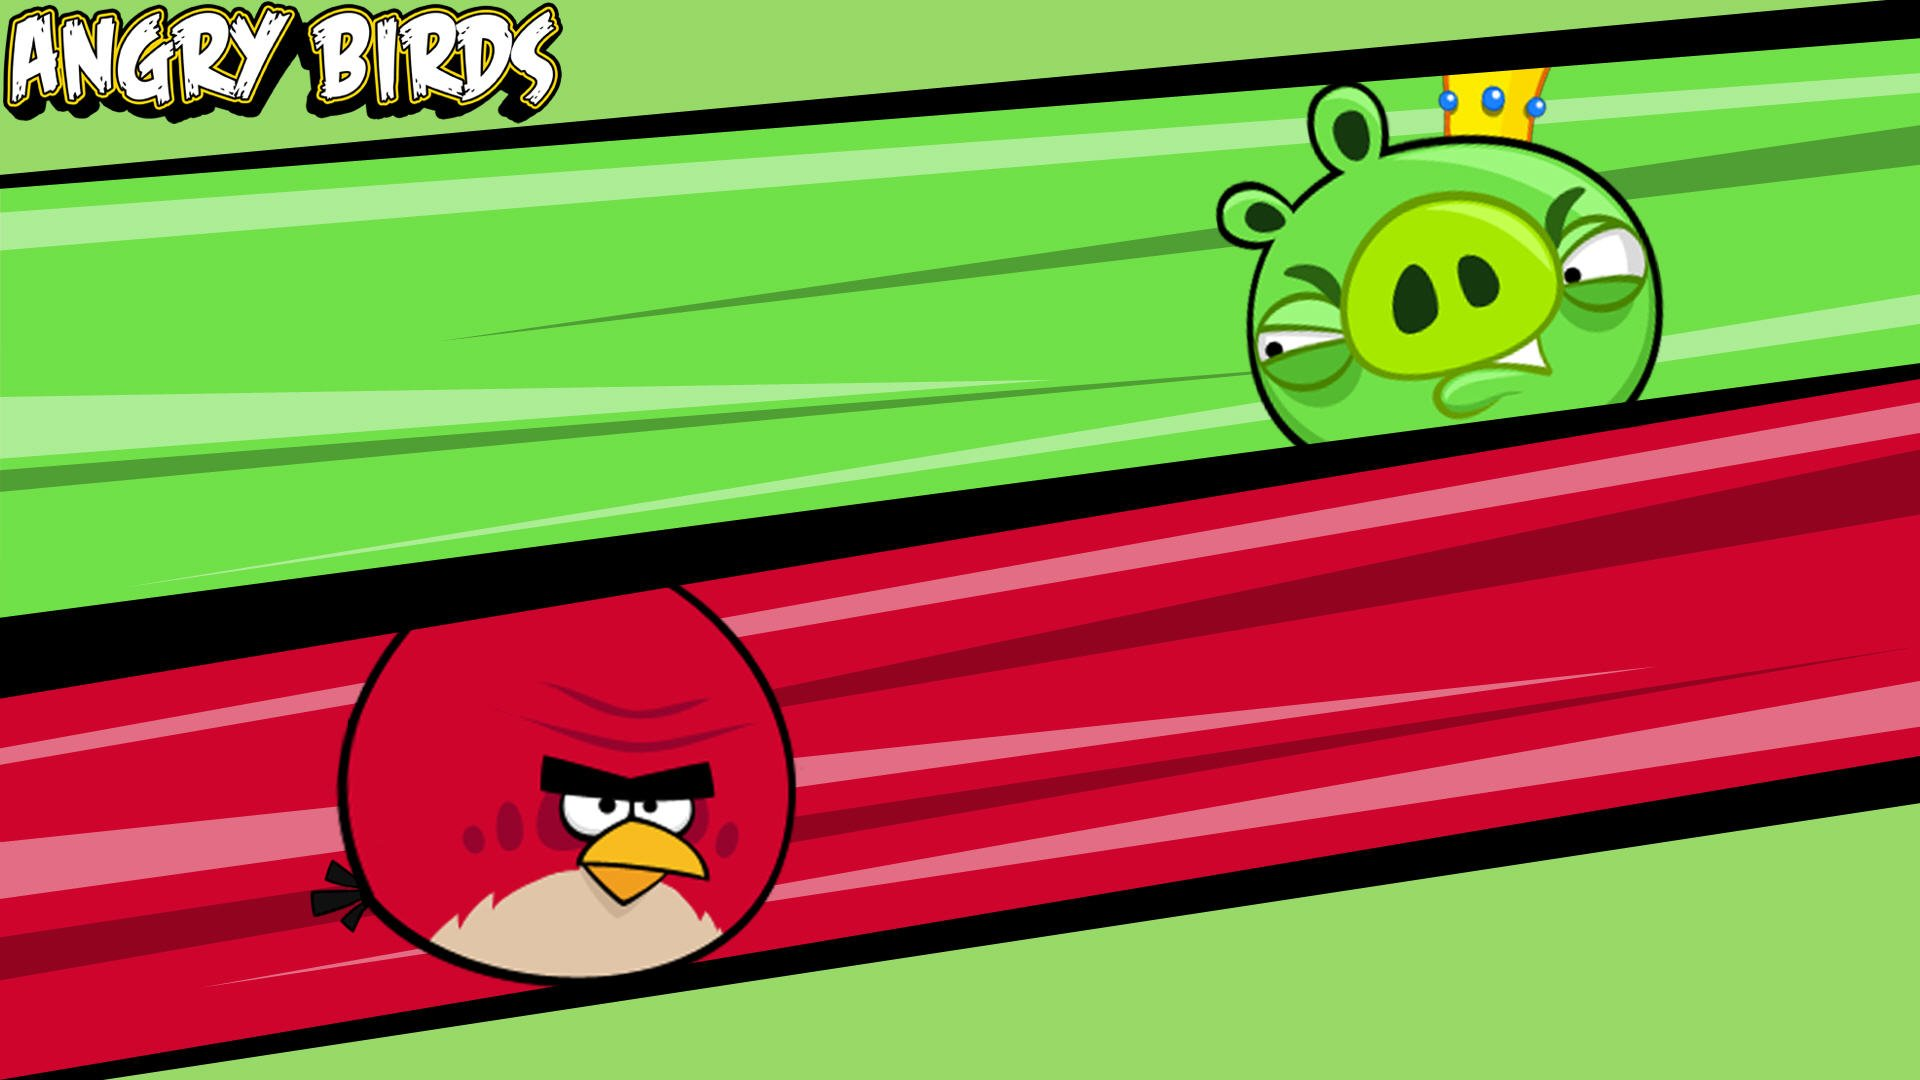 Angry Birds Themes Wallpaper HD 1920x1080 4561 1920x1080